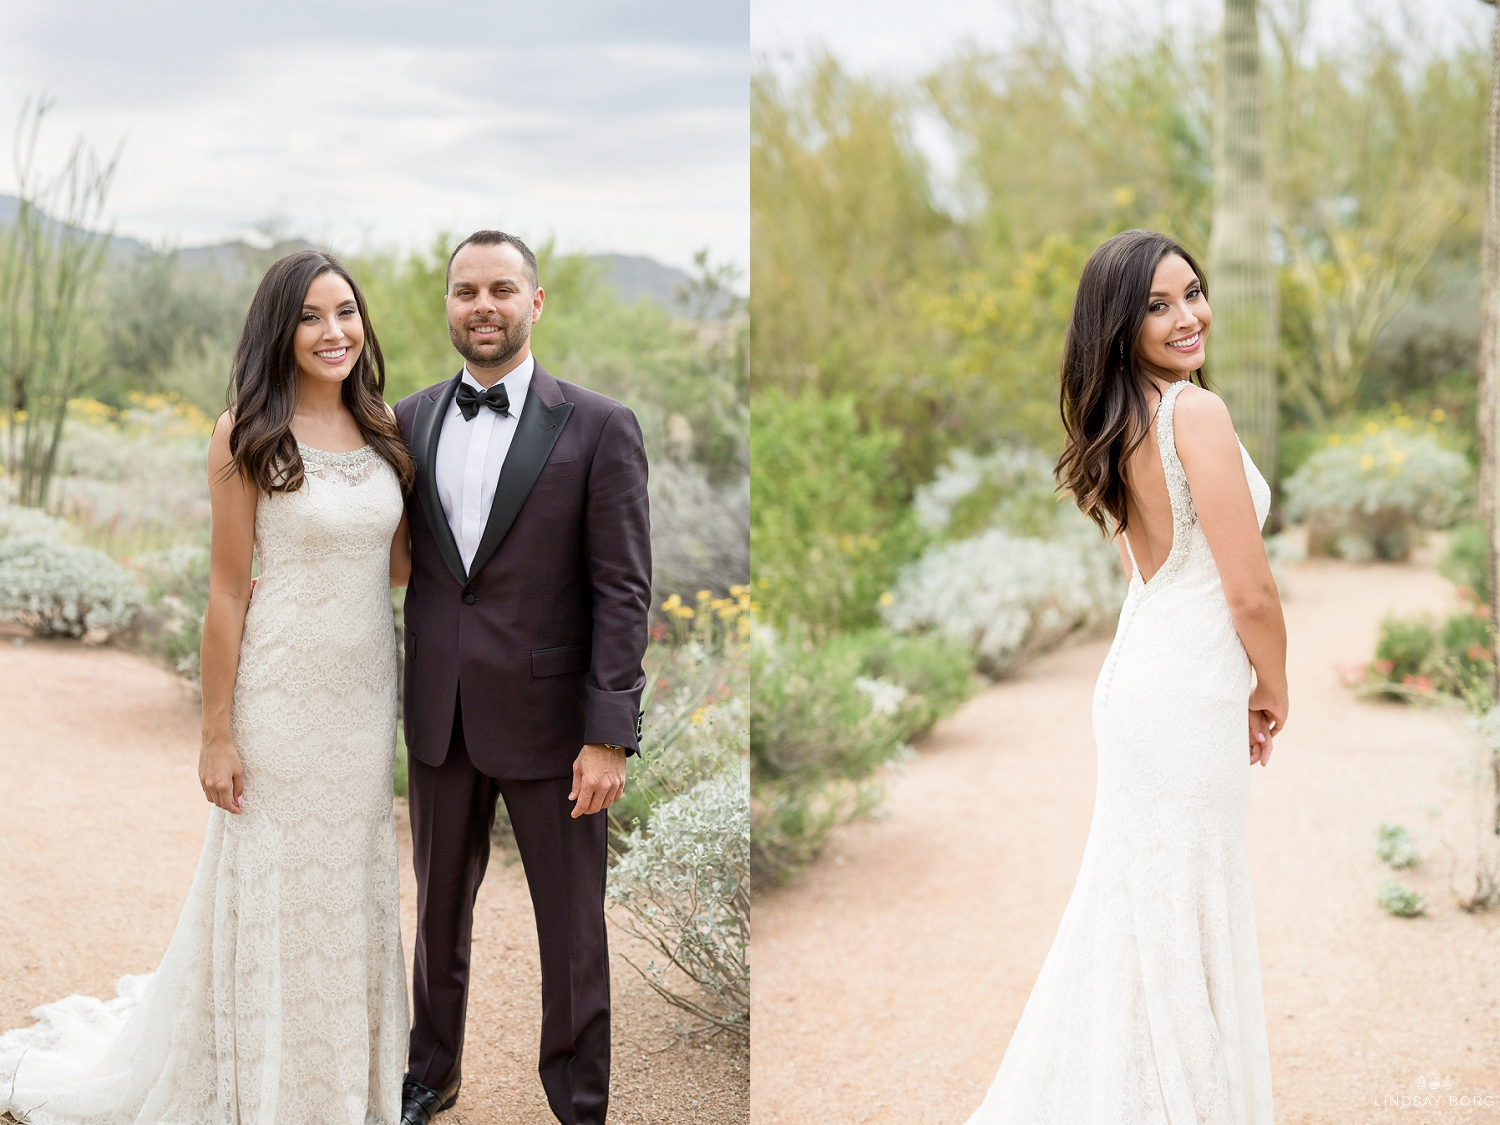 Lindsay-Borg-Photography-arizona-senior-wedding-portrait-photographer-az_2912.jpg